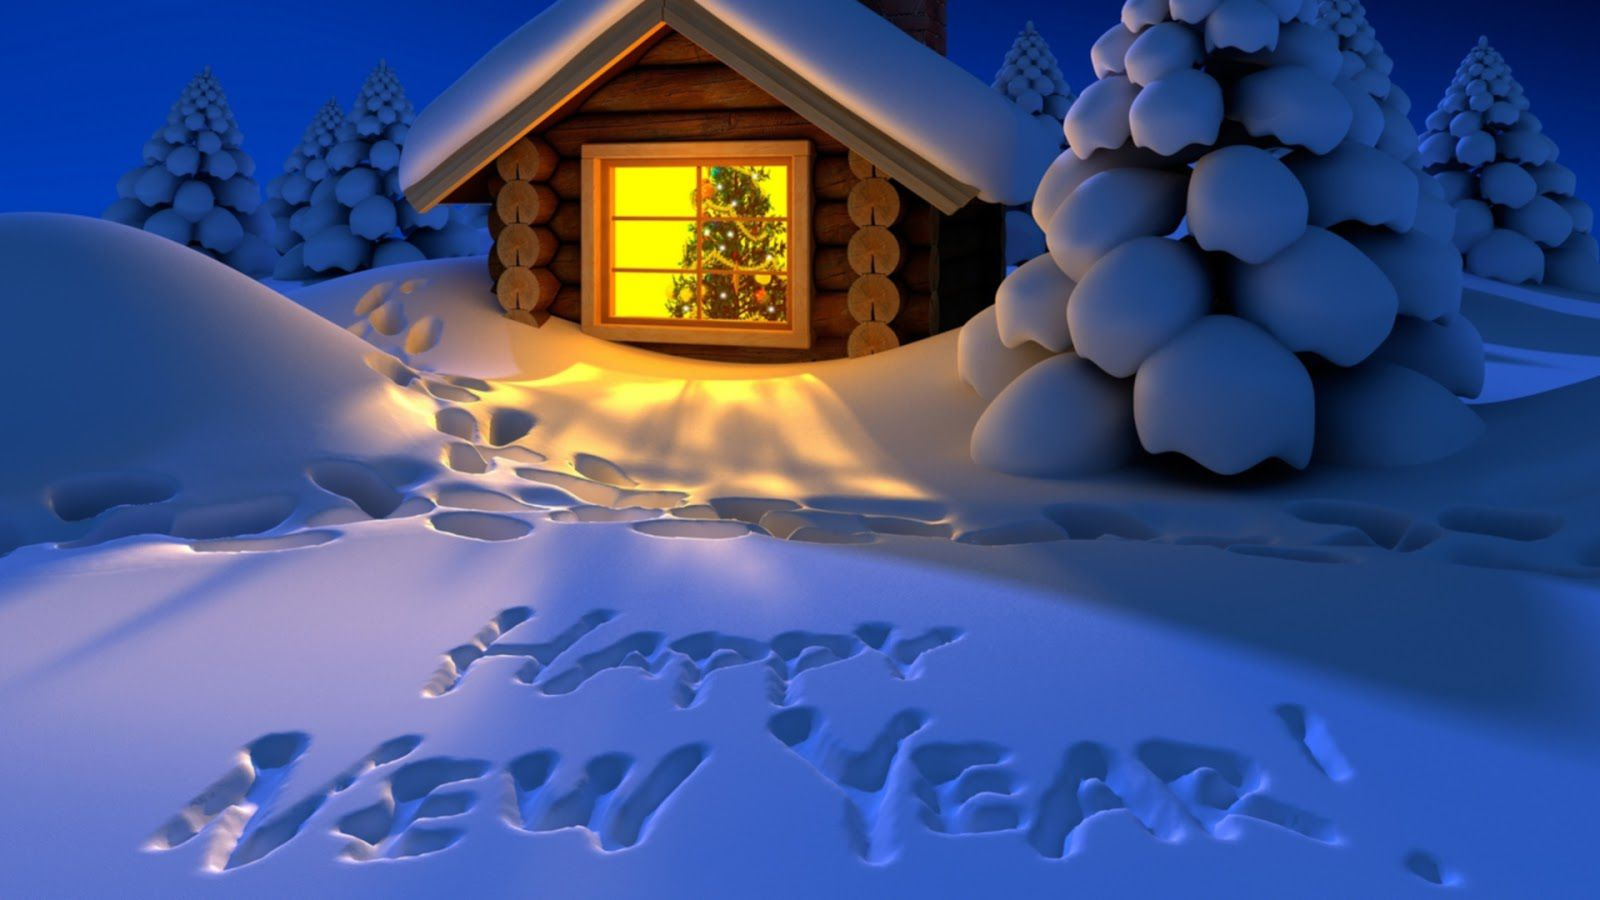 Winter-House-Happy-New-Year-2016-Photo